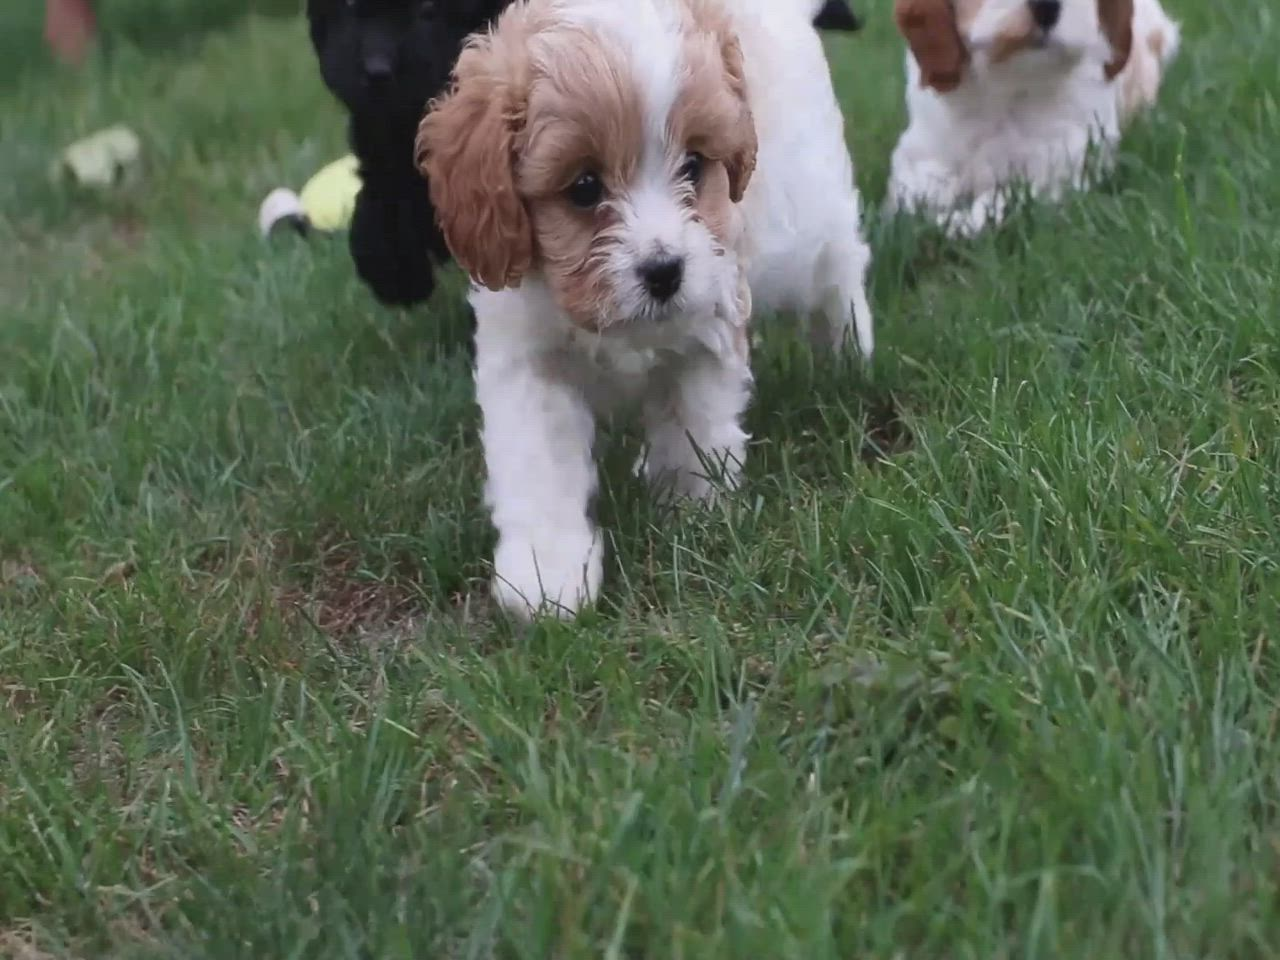 Add A New Member In Your Family It Is A Little Puppy Puppiesforsaleinbrisbane Yes You Read It Right Puppies For Sale Maltese Poodle Puppies Fluffy Puppies